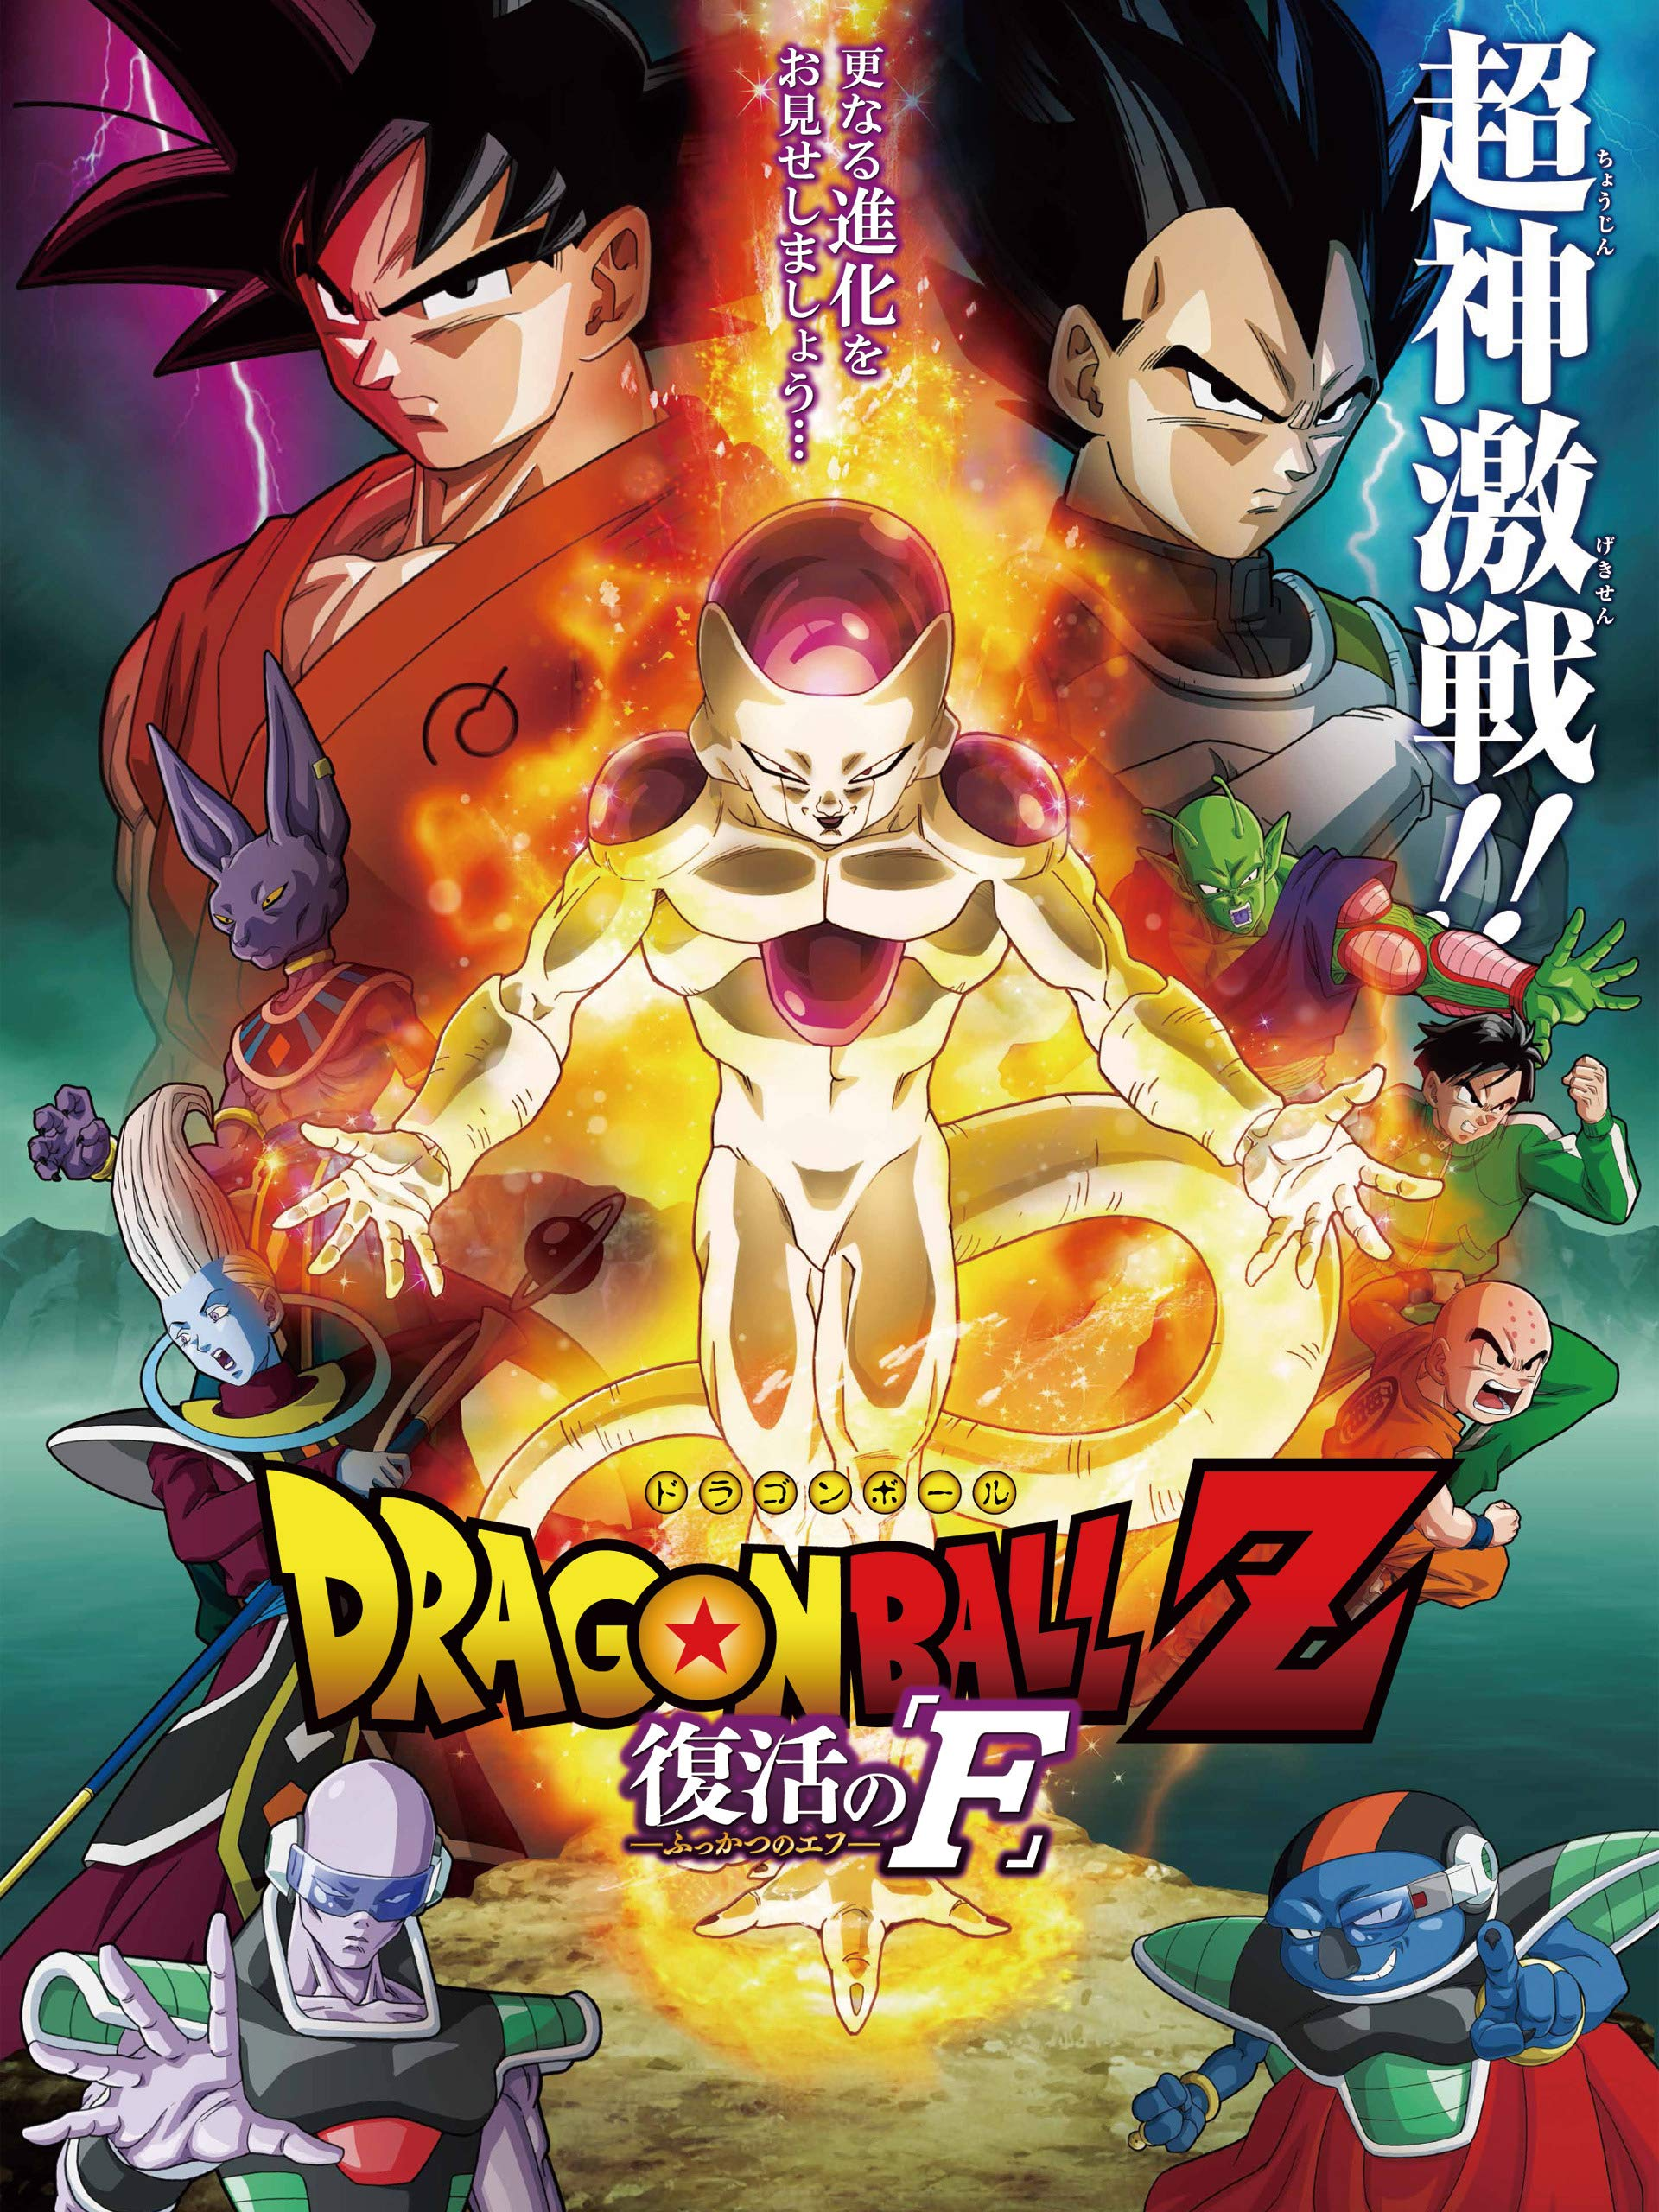 Dragon Ball Z Resurrection F 2015 Imdb